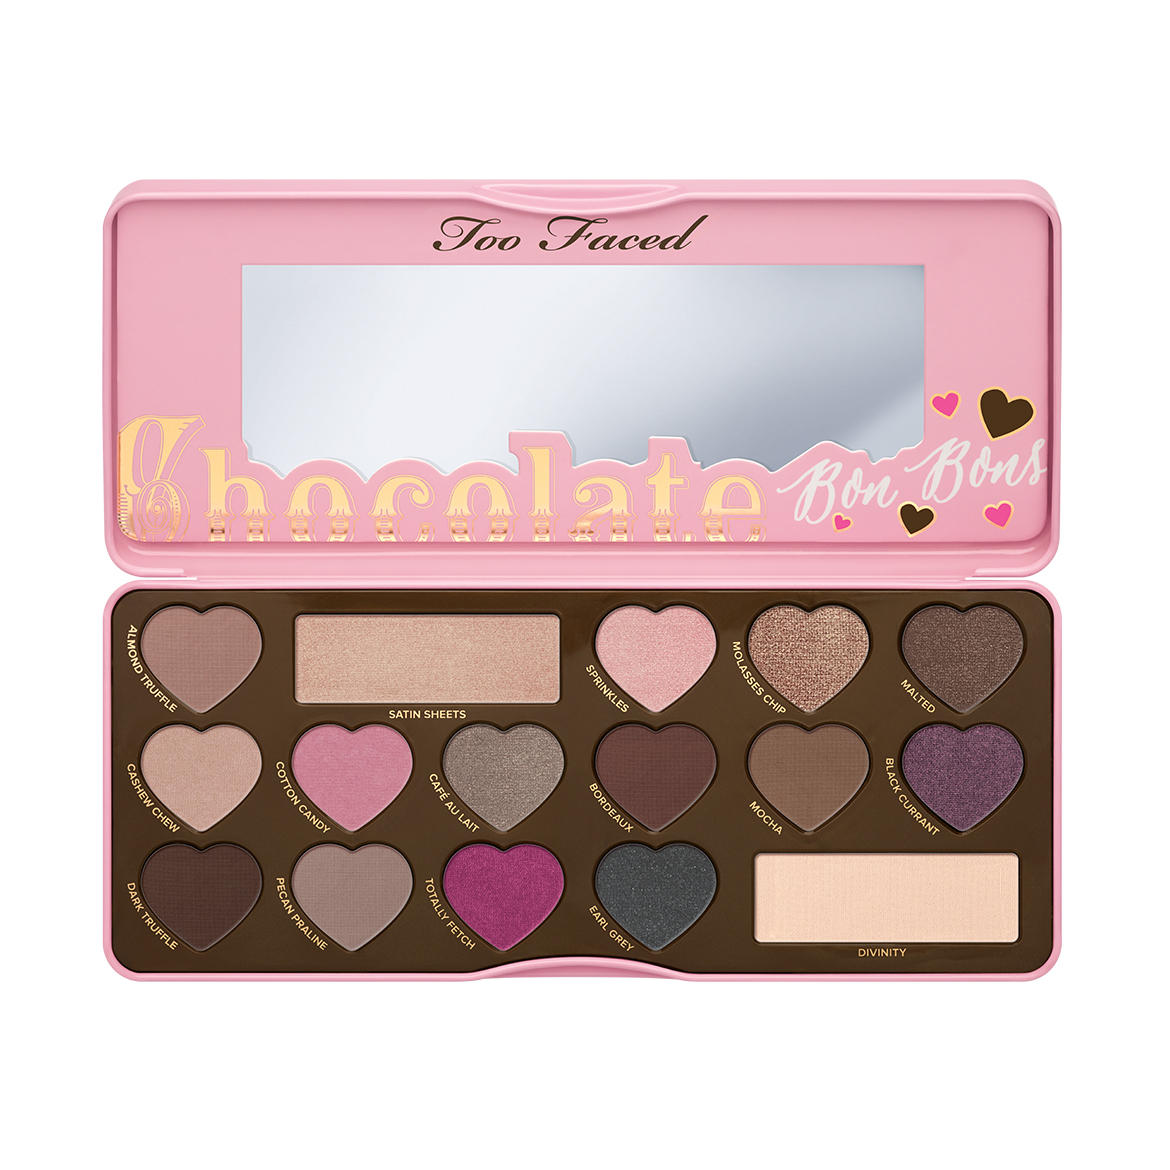 New ReleaseToo Faced lauched New CHOCOLATE BON BONS Palette